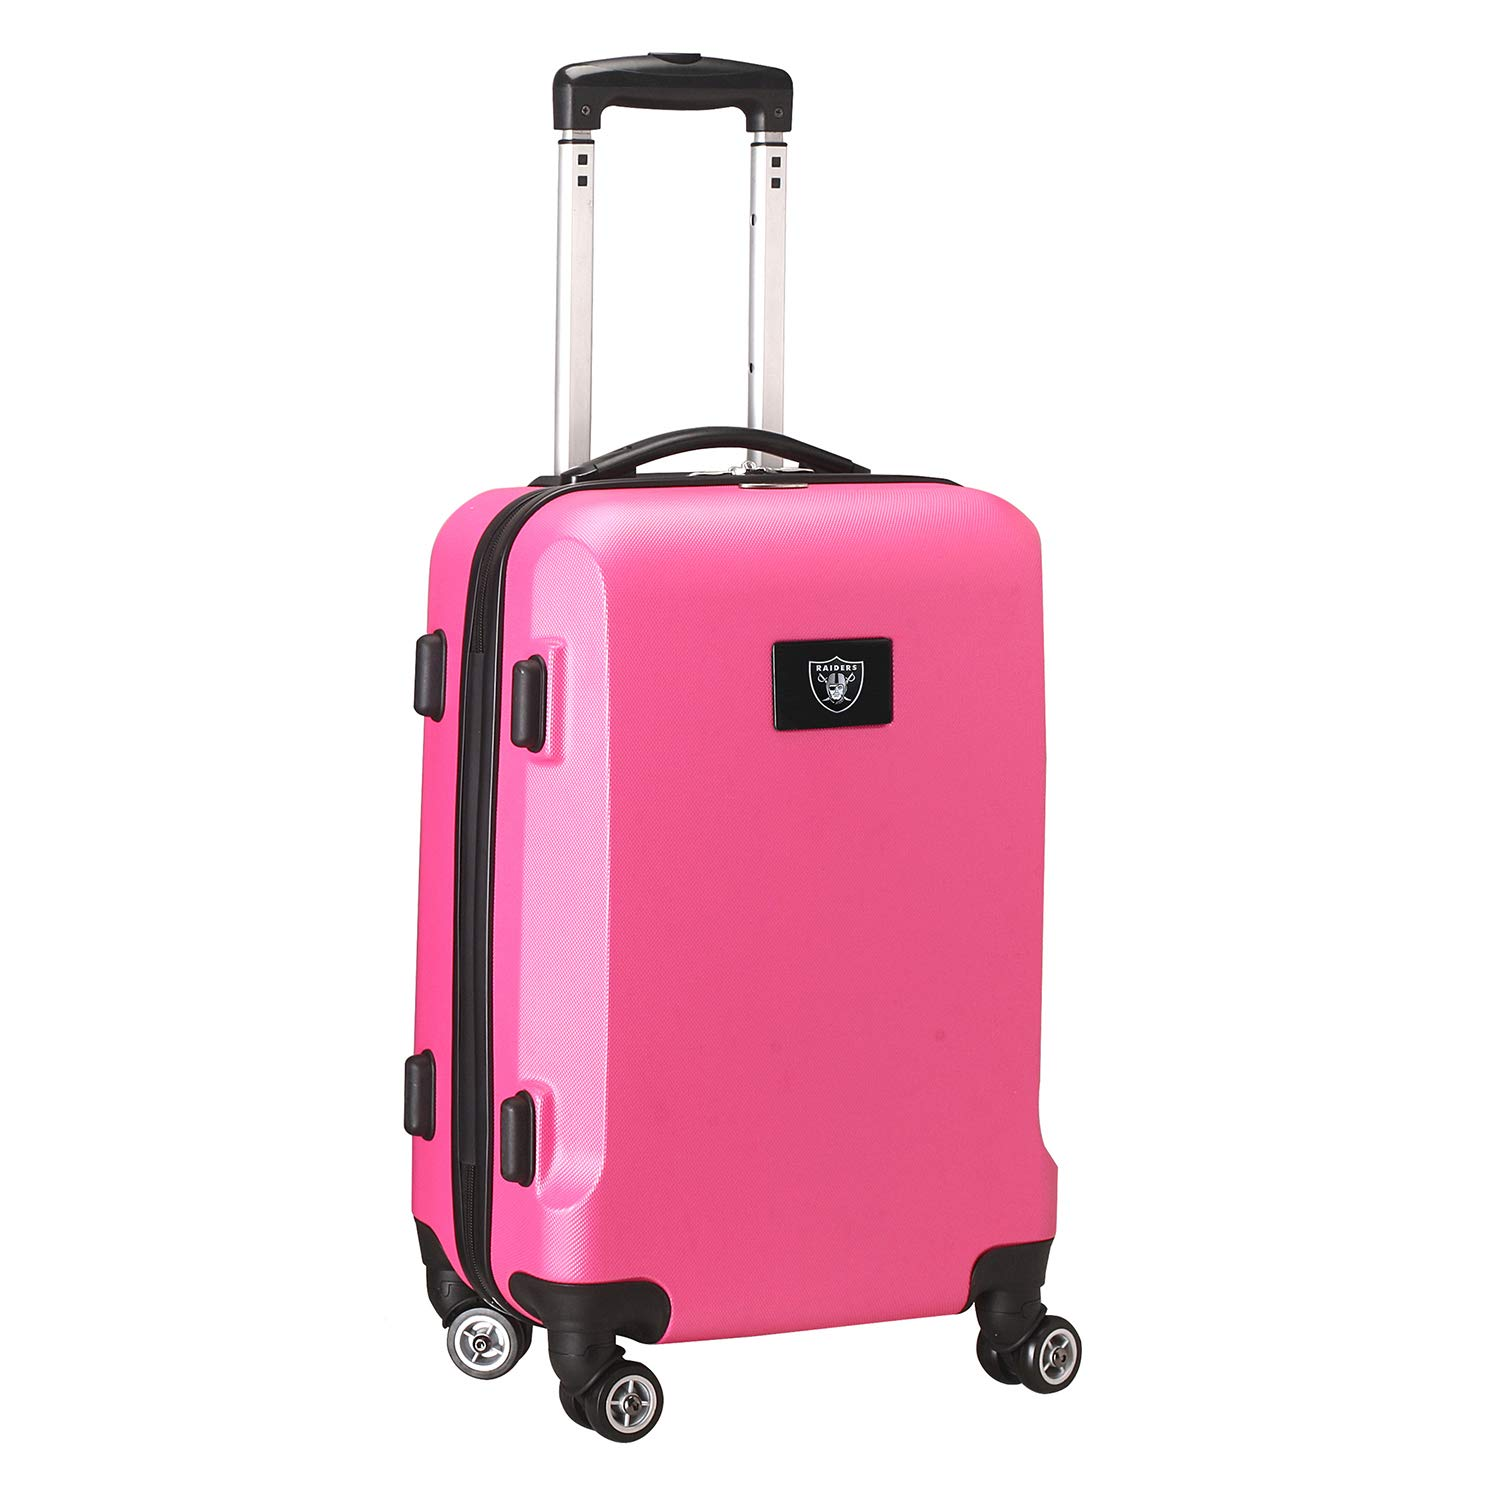 Denco NFL Oakland Raiders Carry-On Hardcase Luggage Spinner, Pink